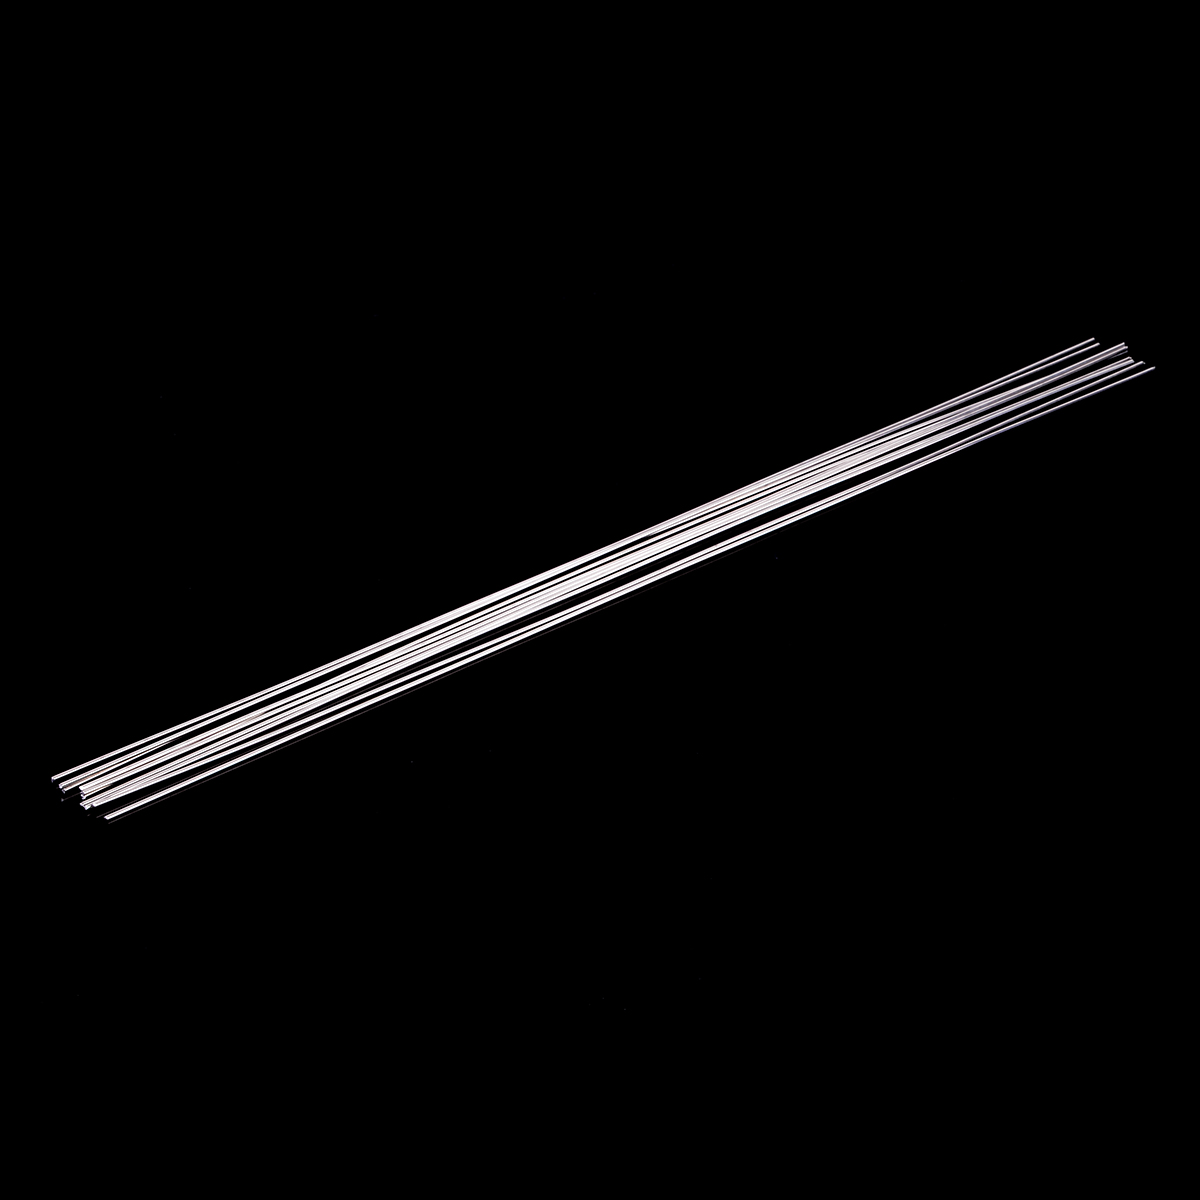 10pcs Metal Aluminum Welding Rod Low Temperature Magnesium Soldering Brazing Stick Rods 1.6mmx45cm Silver